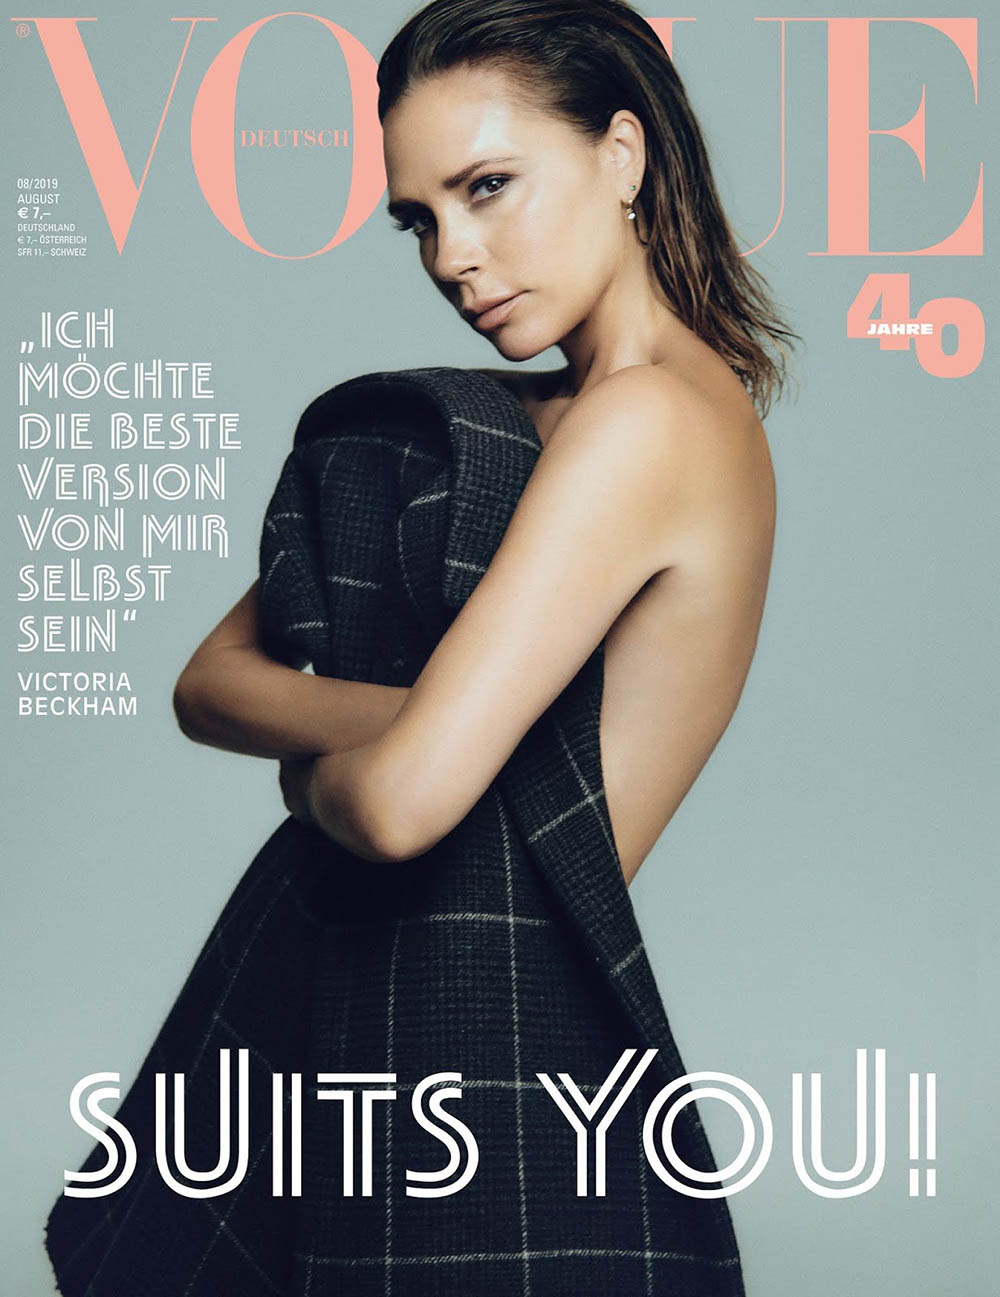 Victoria Beckham covers Vogue Germany August 2019 by Chris Colls